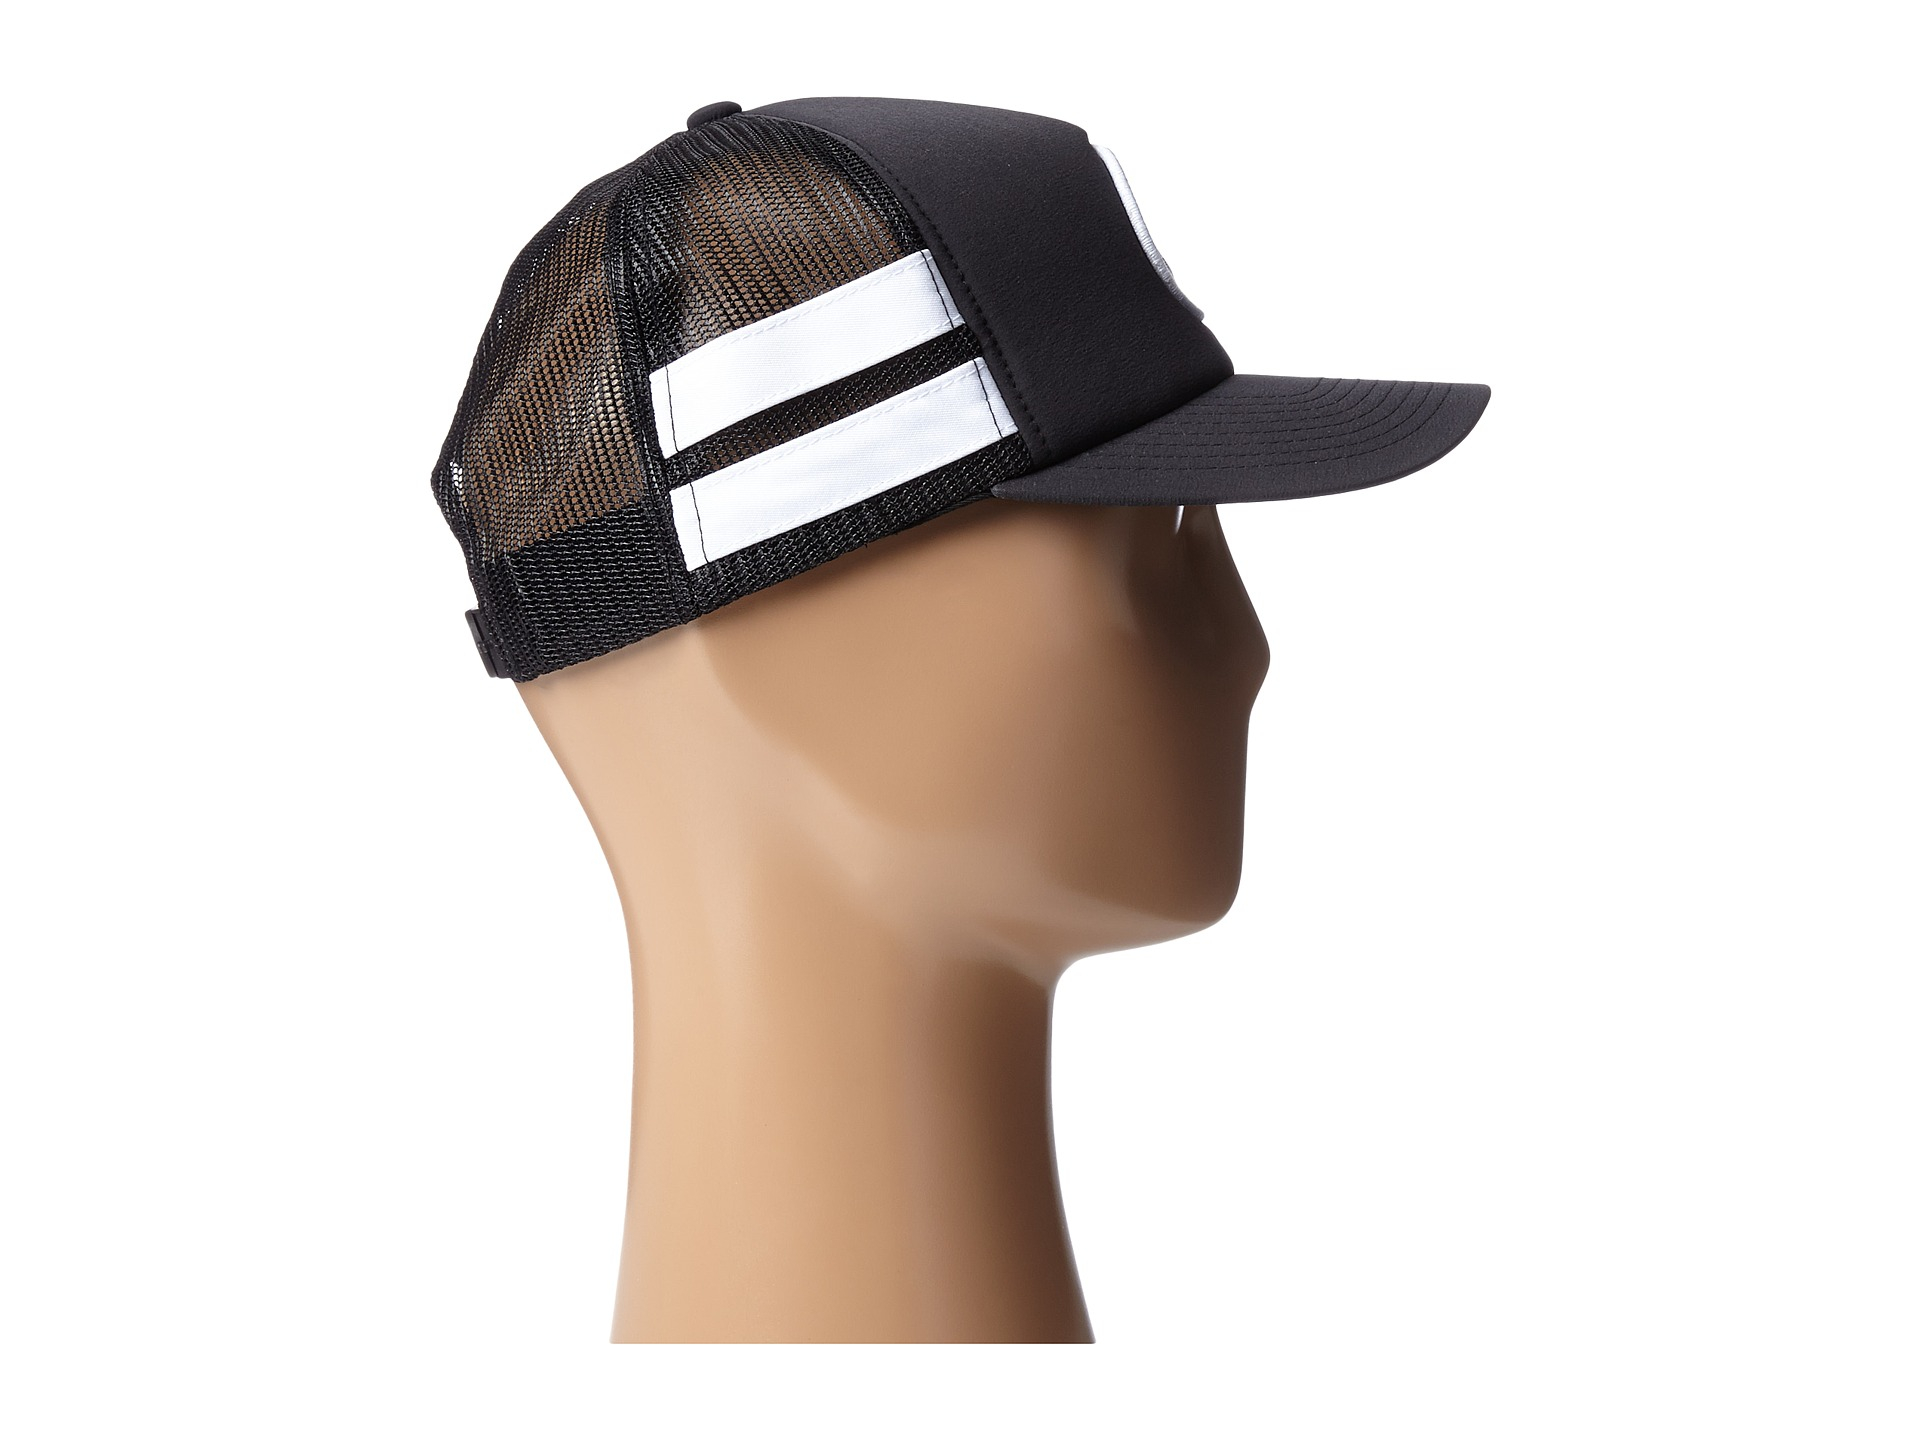 Lyst - Hurley Phantom Block Party Trucker Hat in Black b8cad6e1860